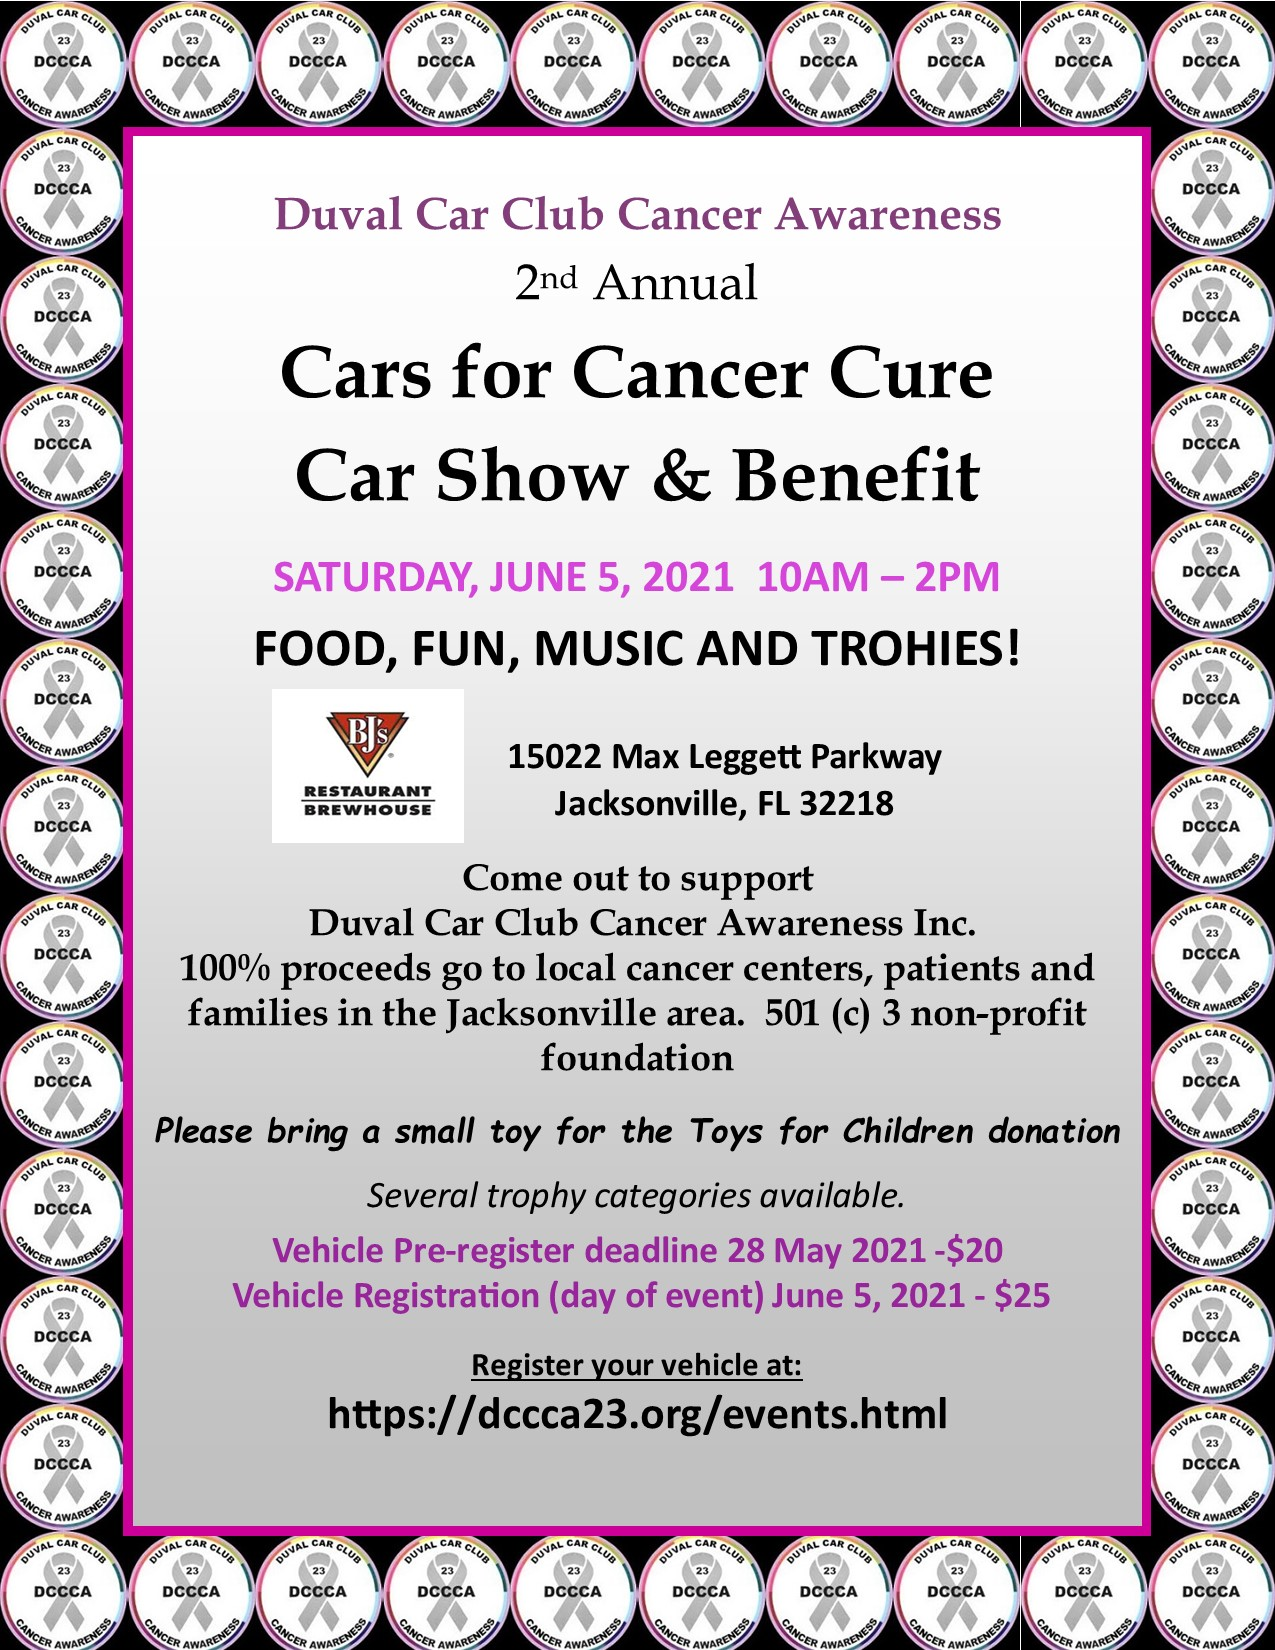 2nd Annual Cars for Cancer Cure Car Show & Benefit